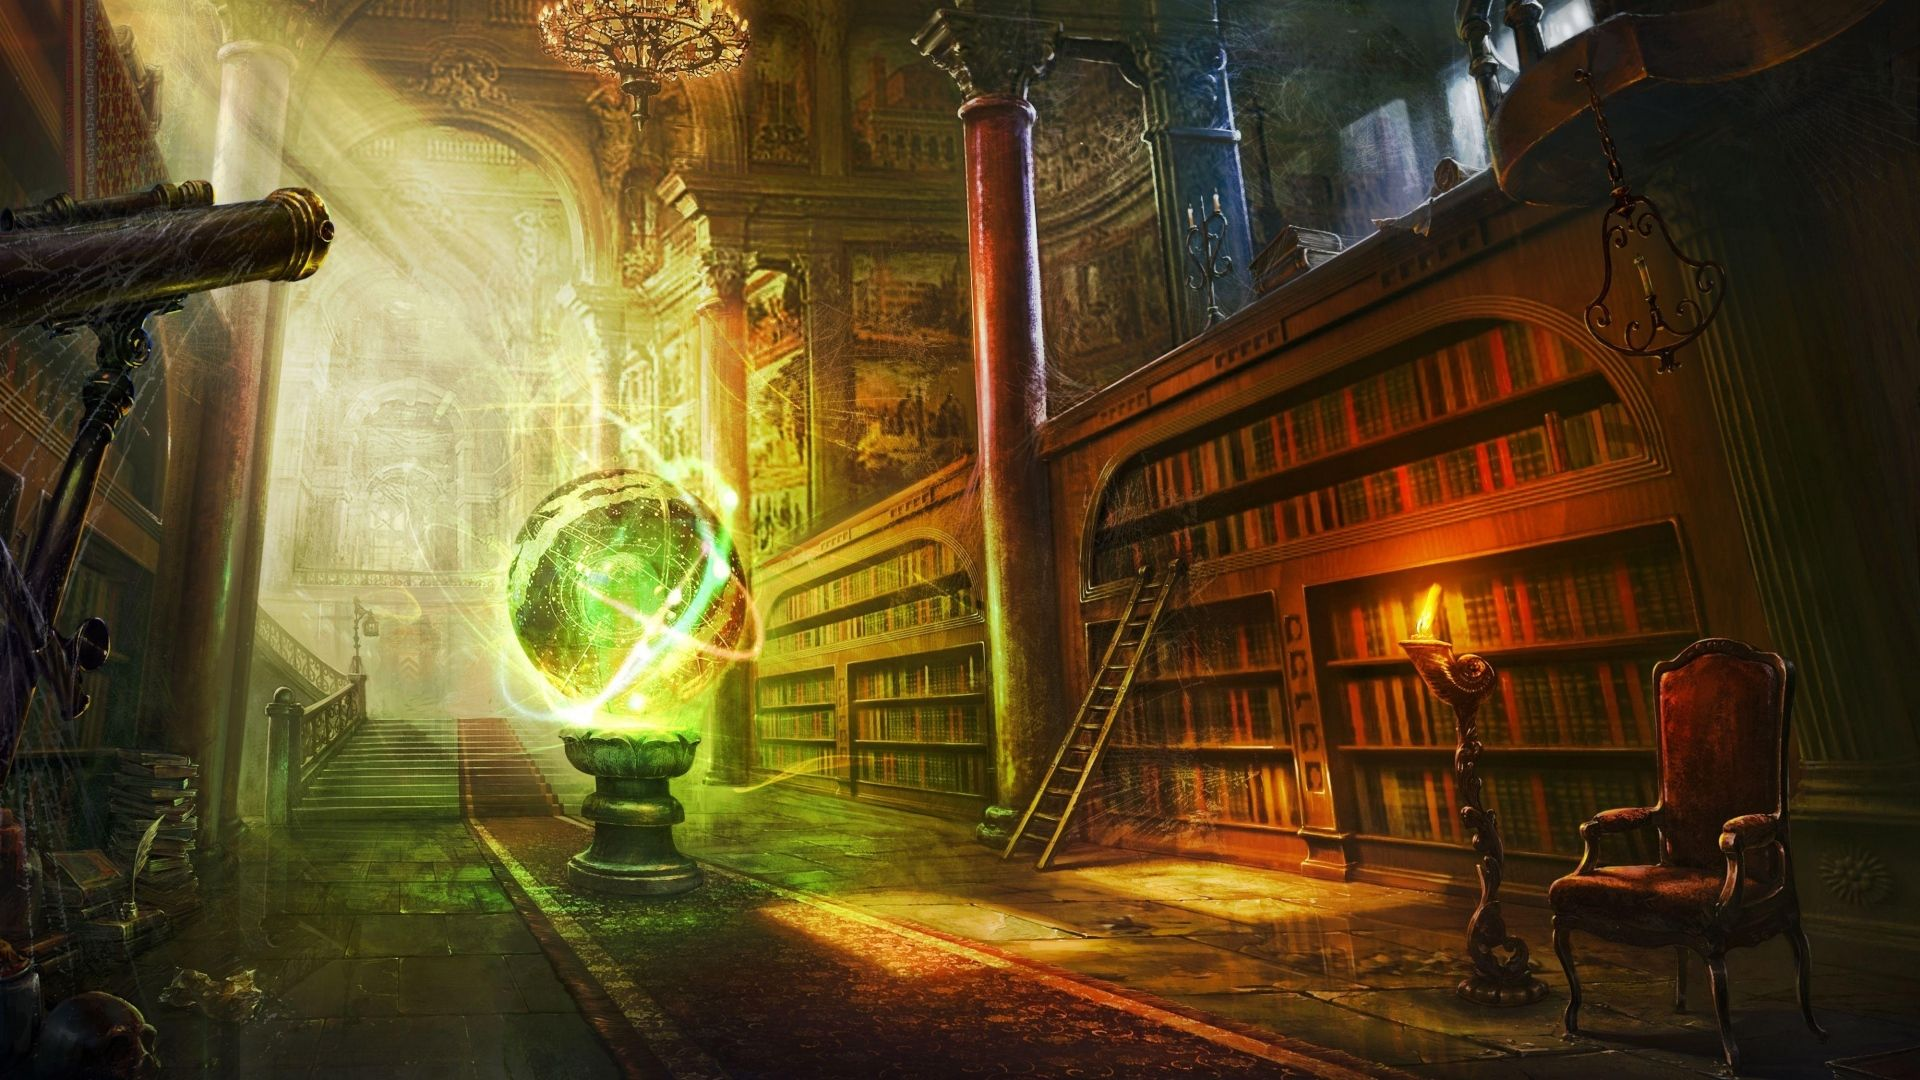 Download Wallpaper 1920x1080 Magic Ball Library Columns Castle Full Hd 1080p Hd Background In 2020 Fantasy Landscape Magical Library Ancient Library